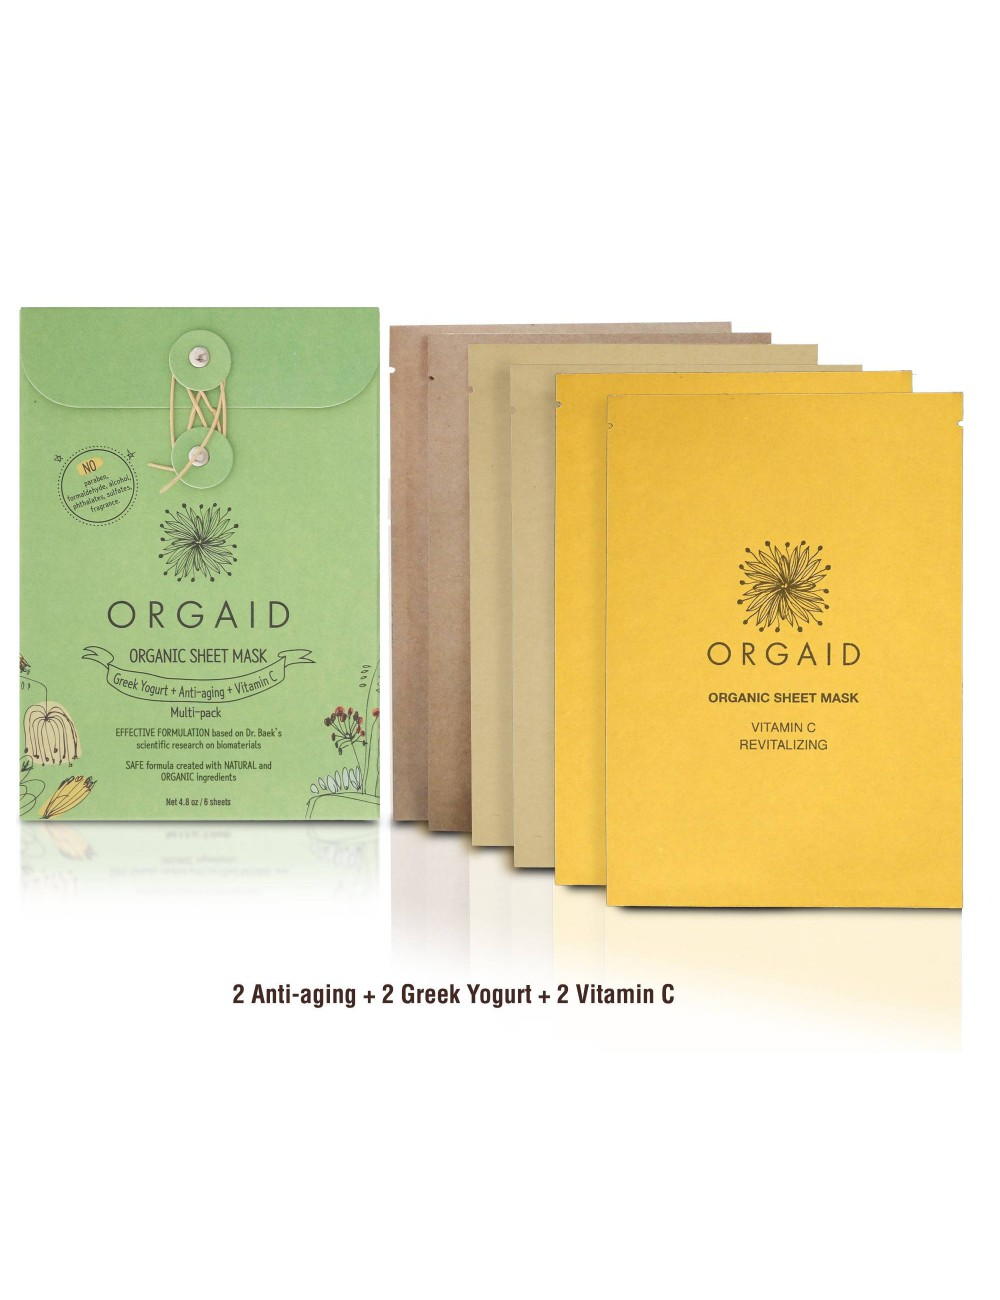 ORGAID Organic Sheet Mask - Assorted multi-pack 6 Sheets